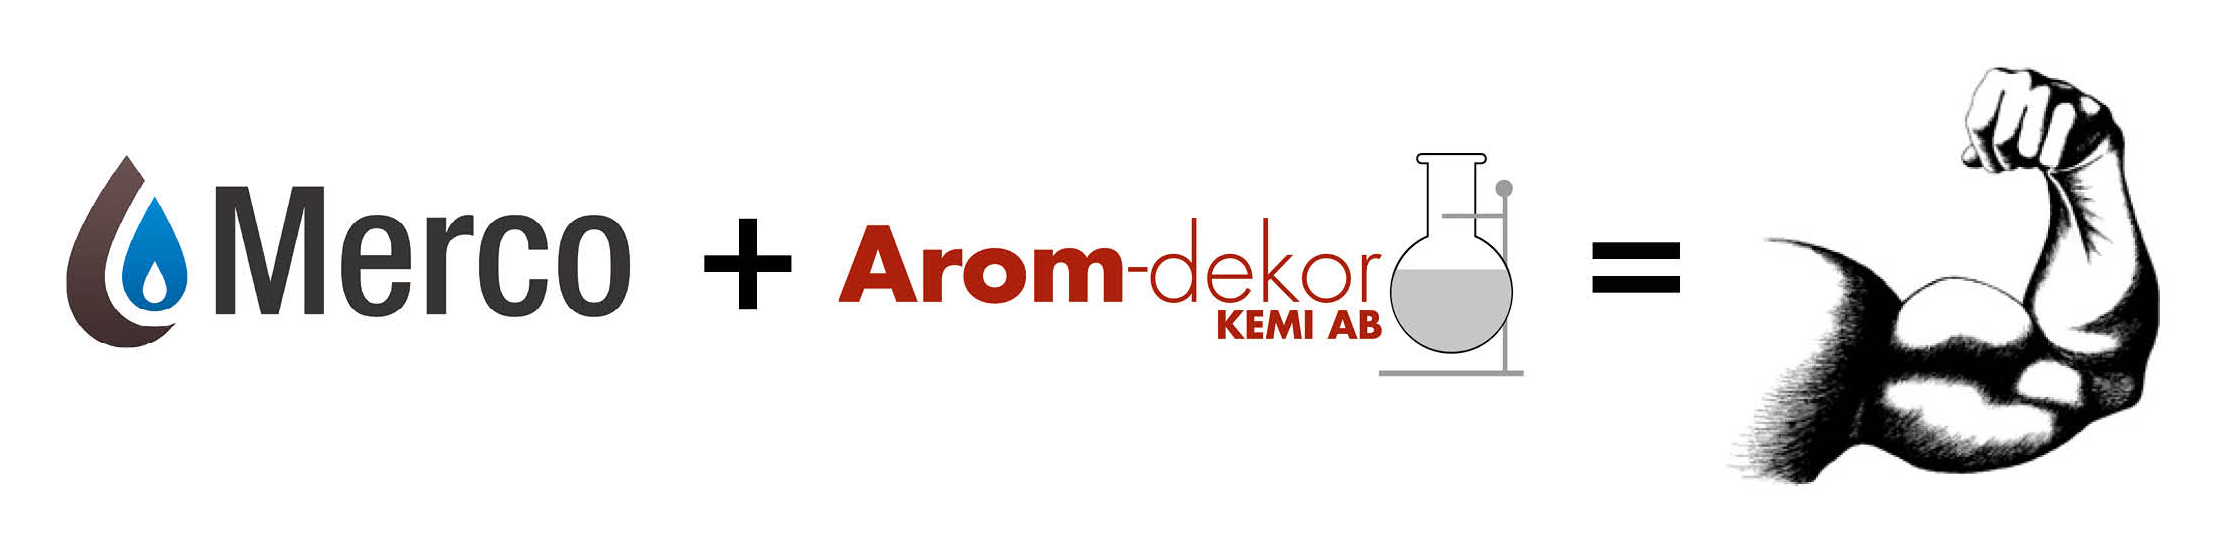 Arom-dekor Kemi AB acquired 80% of the shares in Norwegian company Merco AS